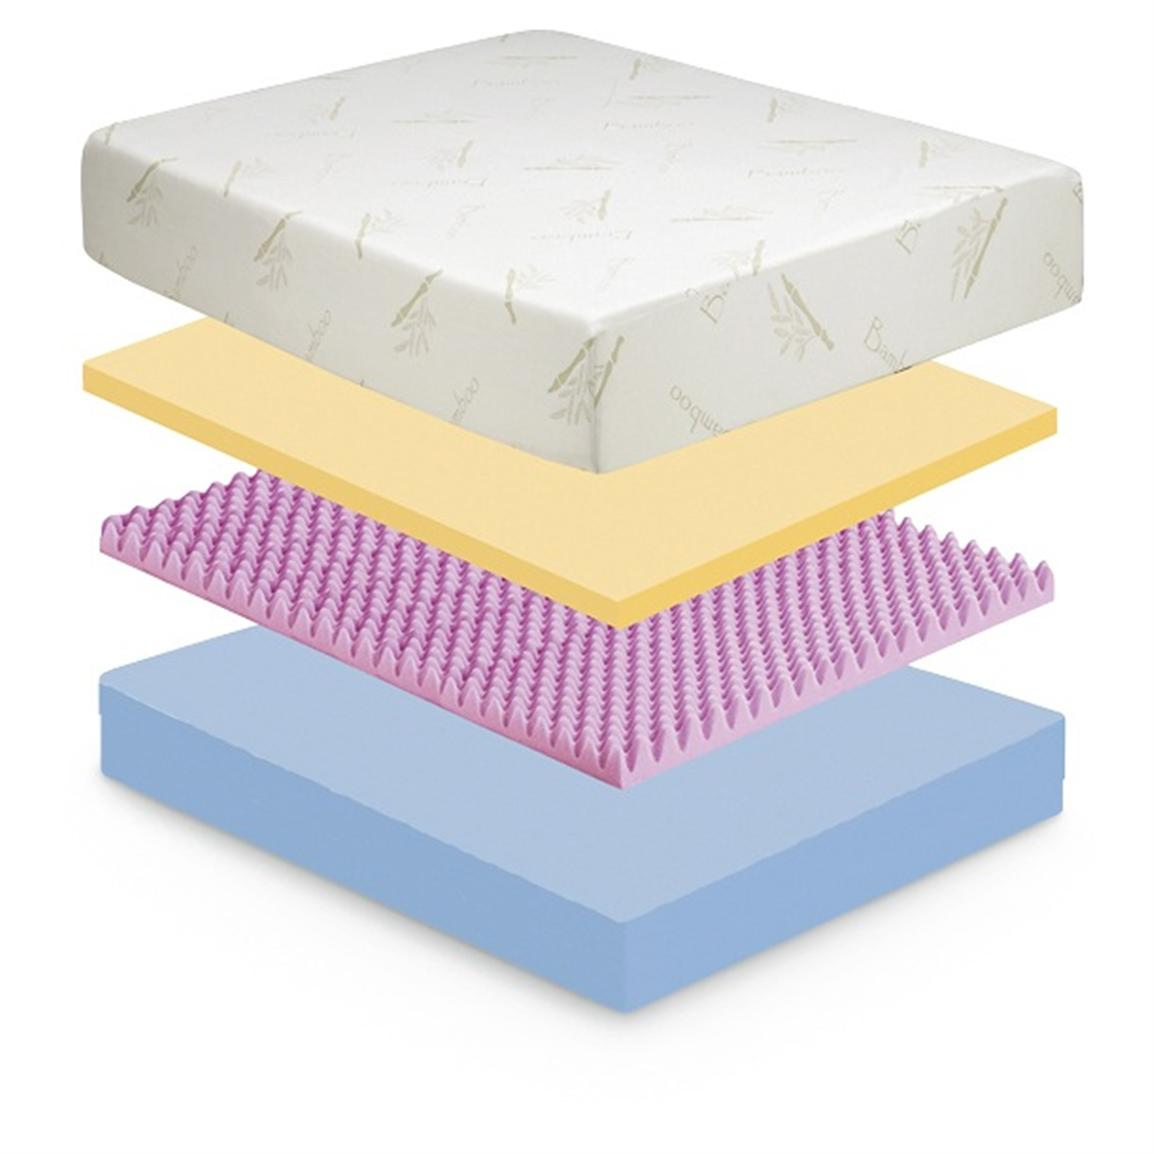 Revolutionary three-layer construction • Soft Memory Foam • High-Density Convoluted Foam • Supportive Reflexa Foam